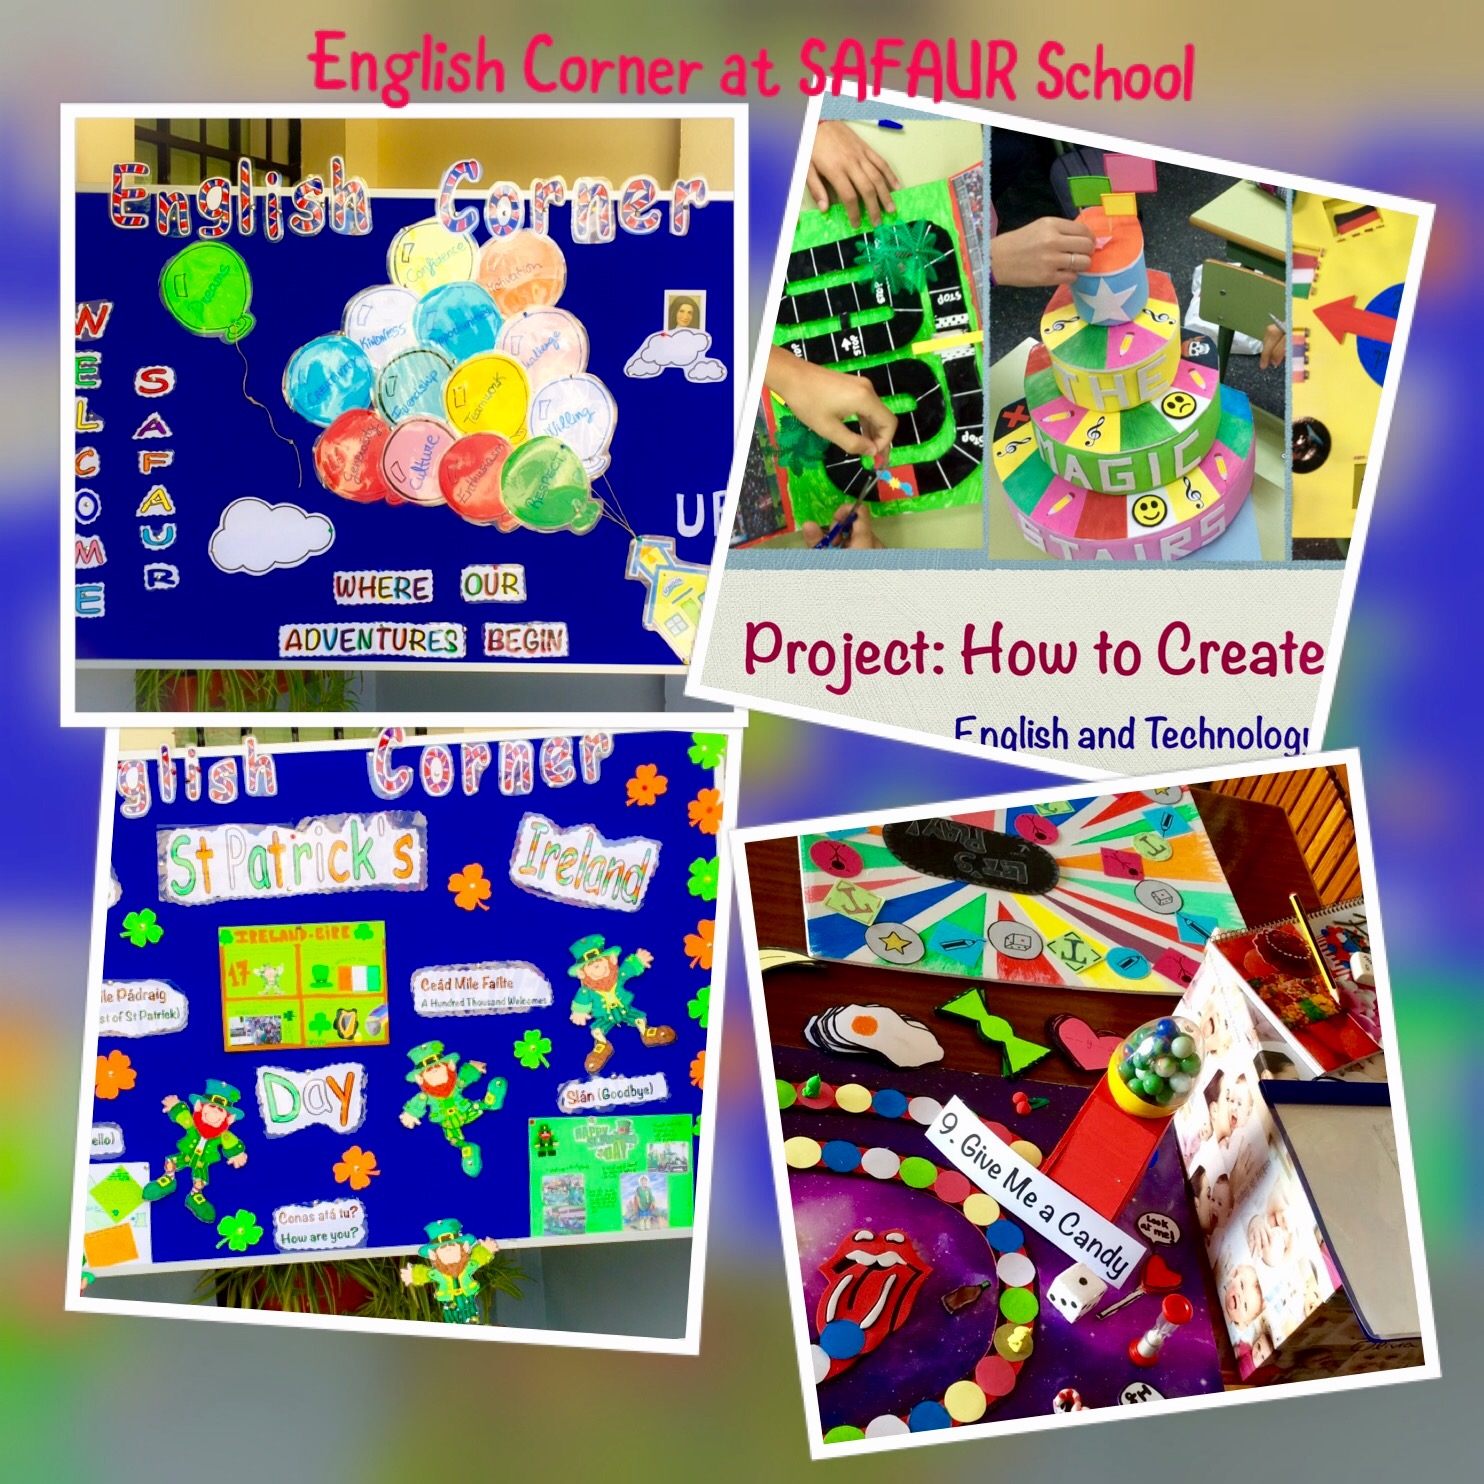 Valme S English Corner Are You Decorating Your English Classroom